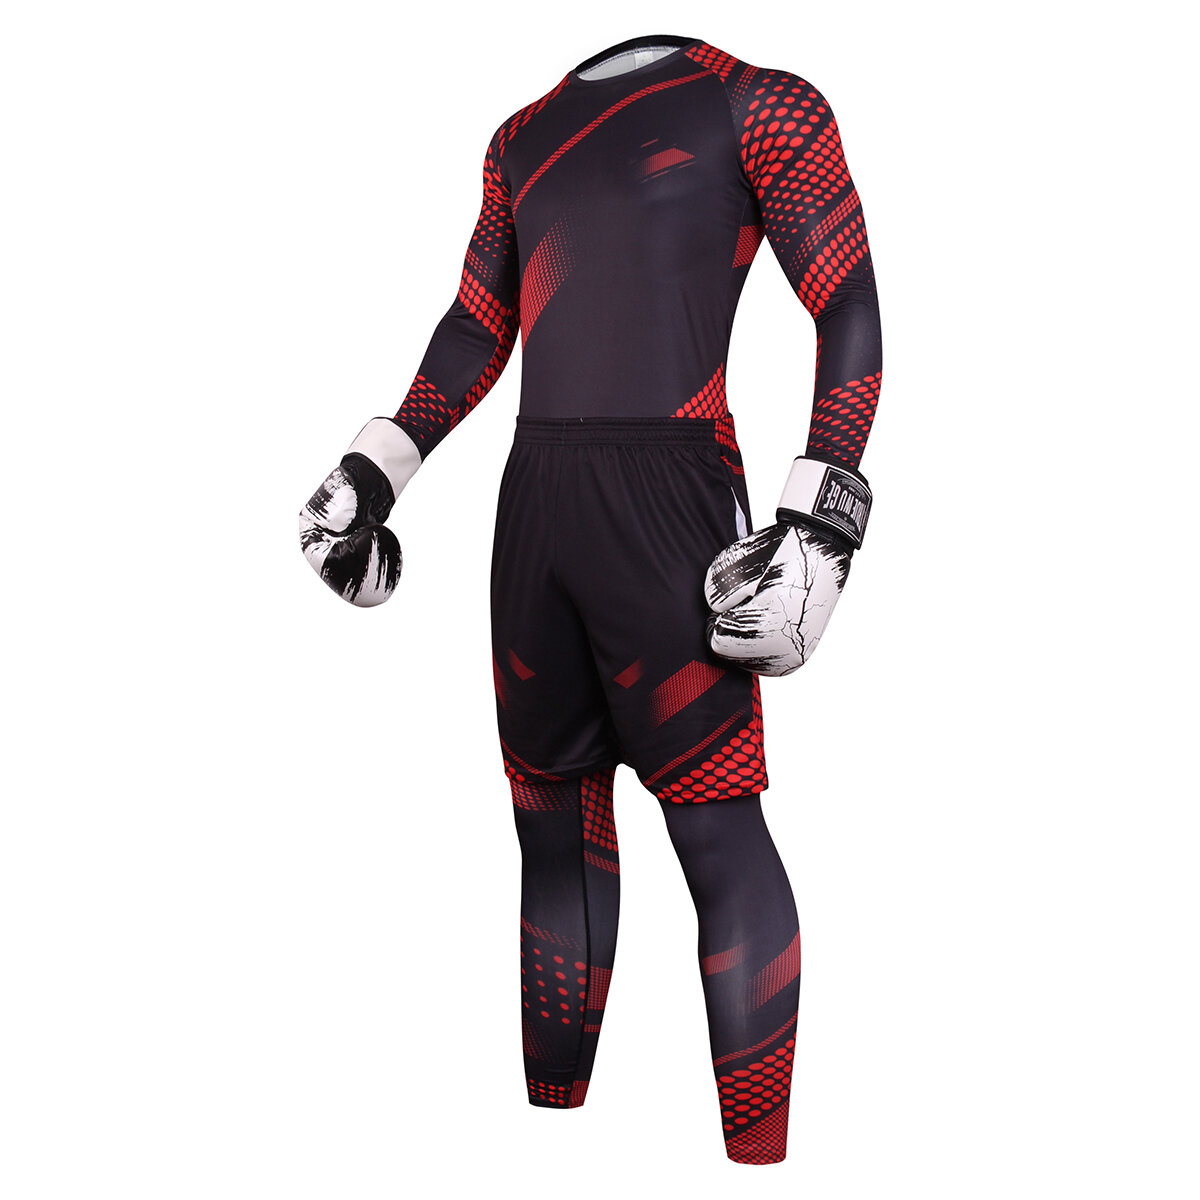 3 in 1 men's stretch suits Black Red